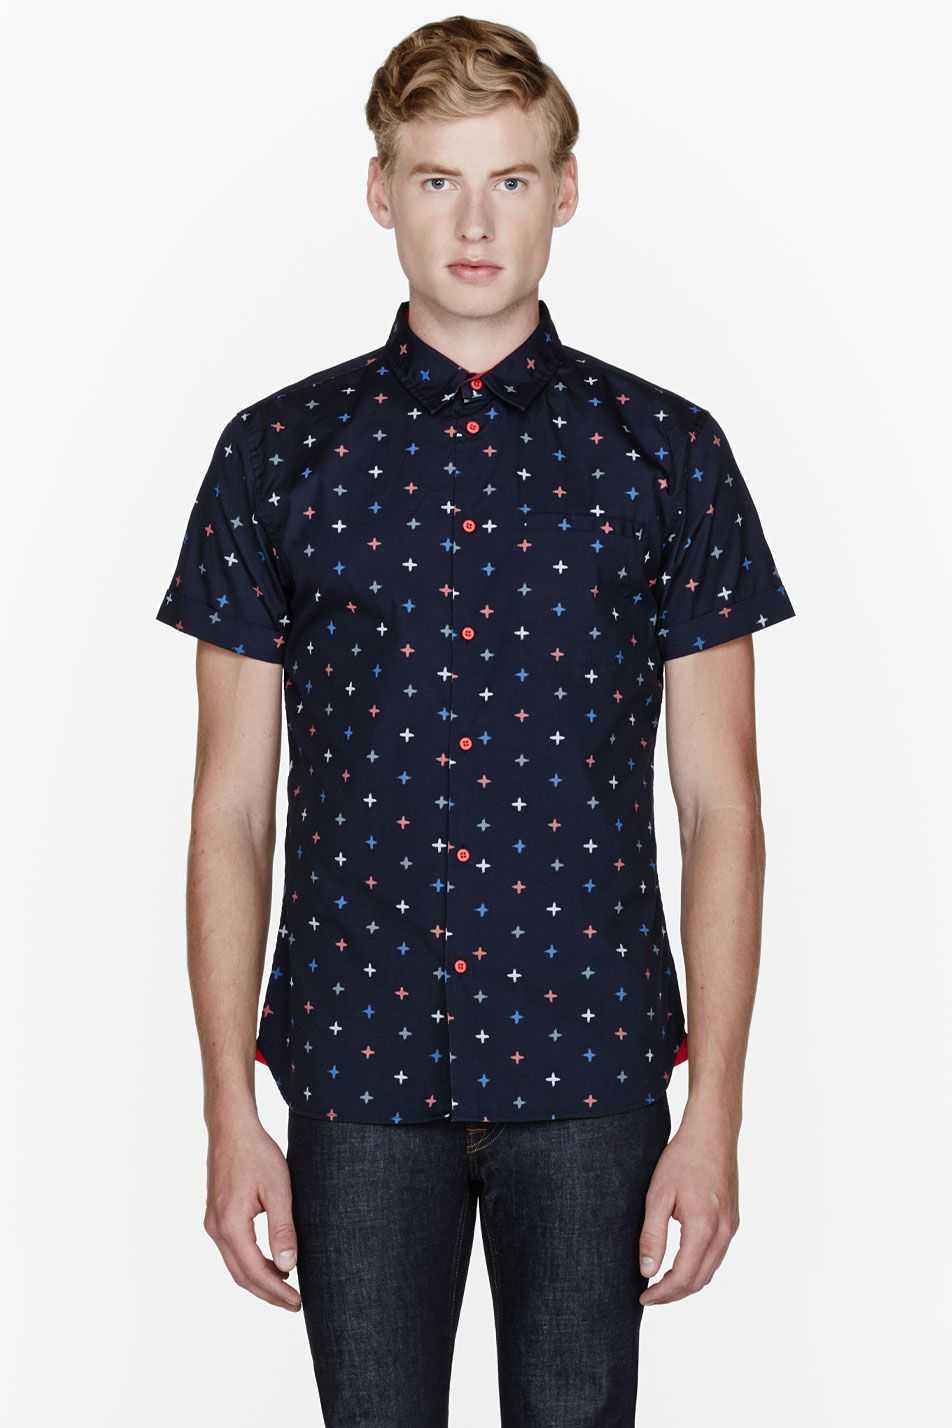 05ebcd29e4f MARC BY MARC JACOBS    Navy blue morris star buttoned shirt 32068M040003  Short sleeve shirt in dark navy blue. Multicolor cross pattern printed  throughout.